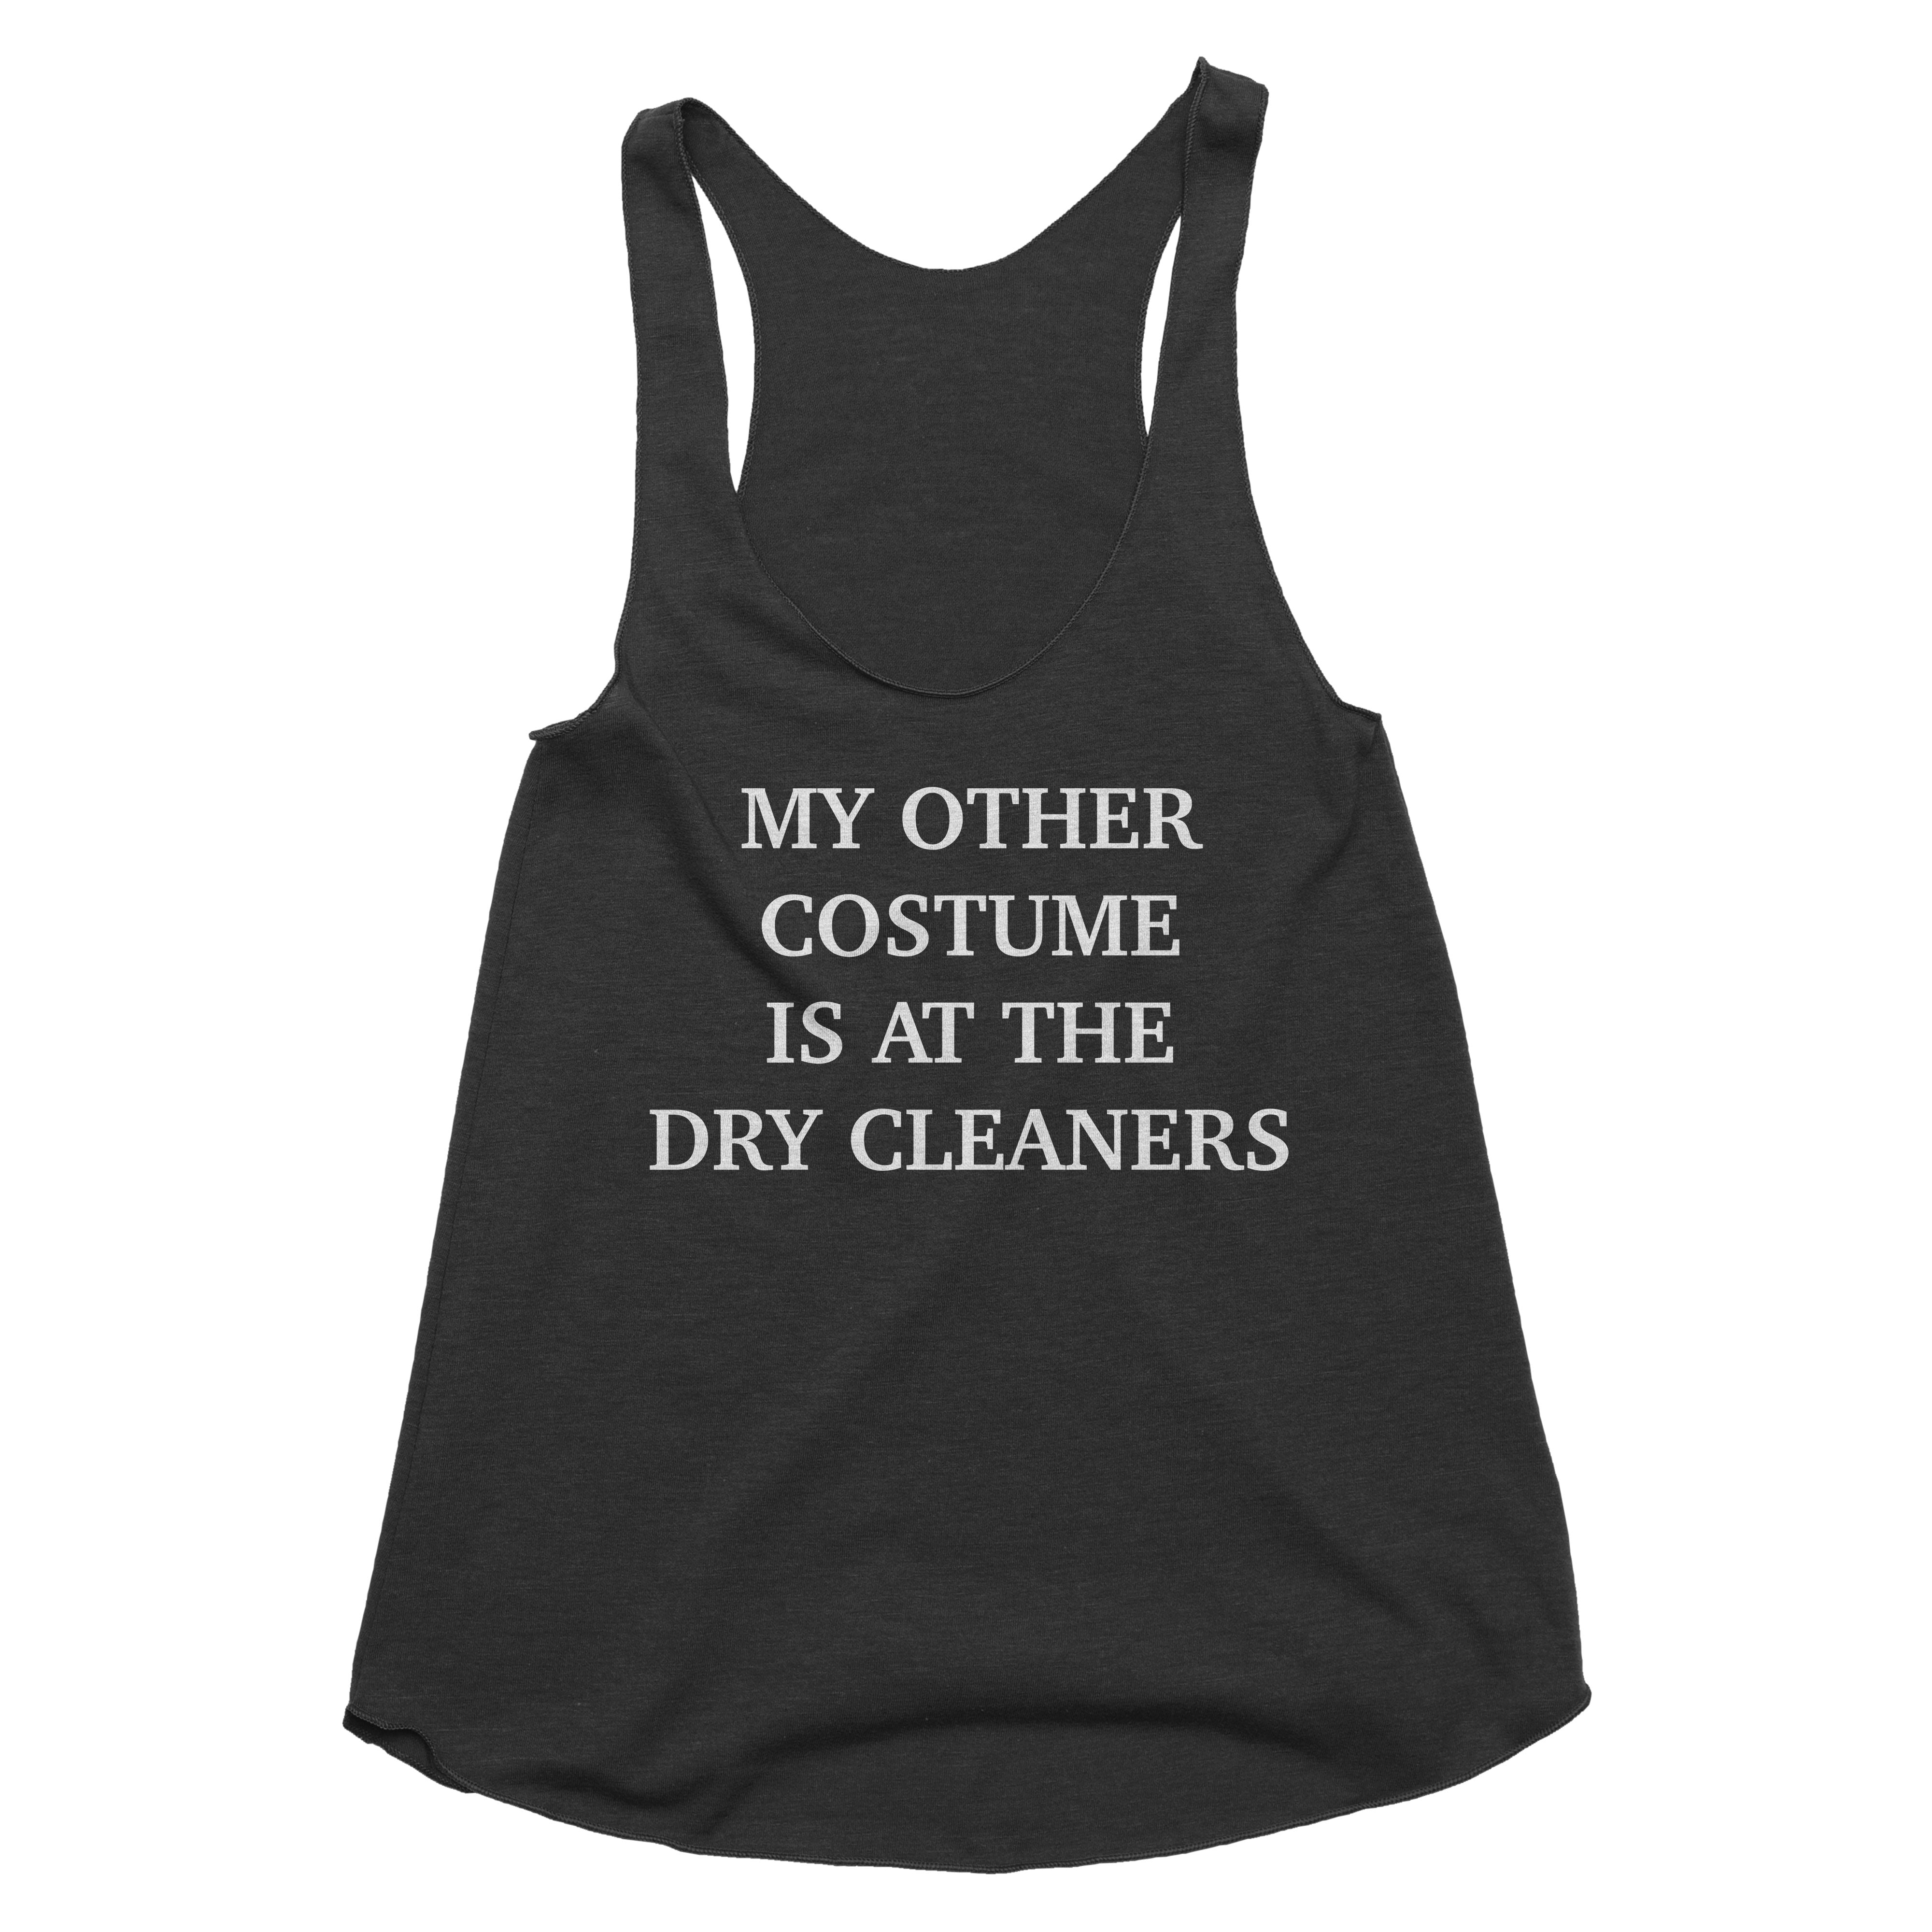 My Other Costume is at the Dry Cleaners Tank Top